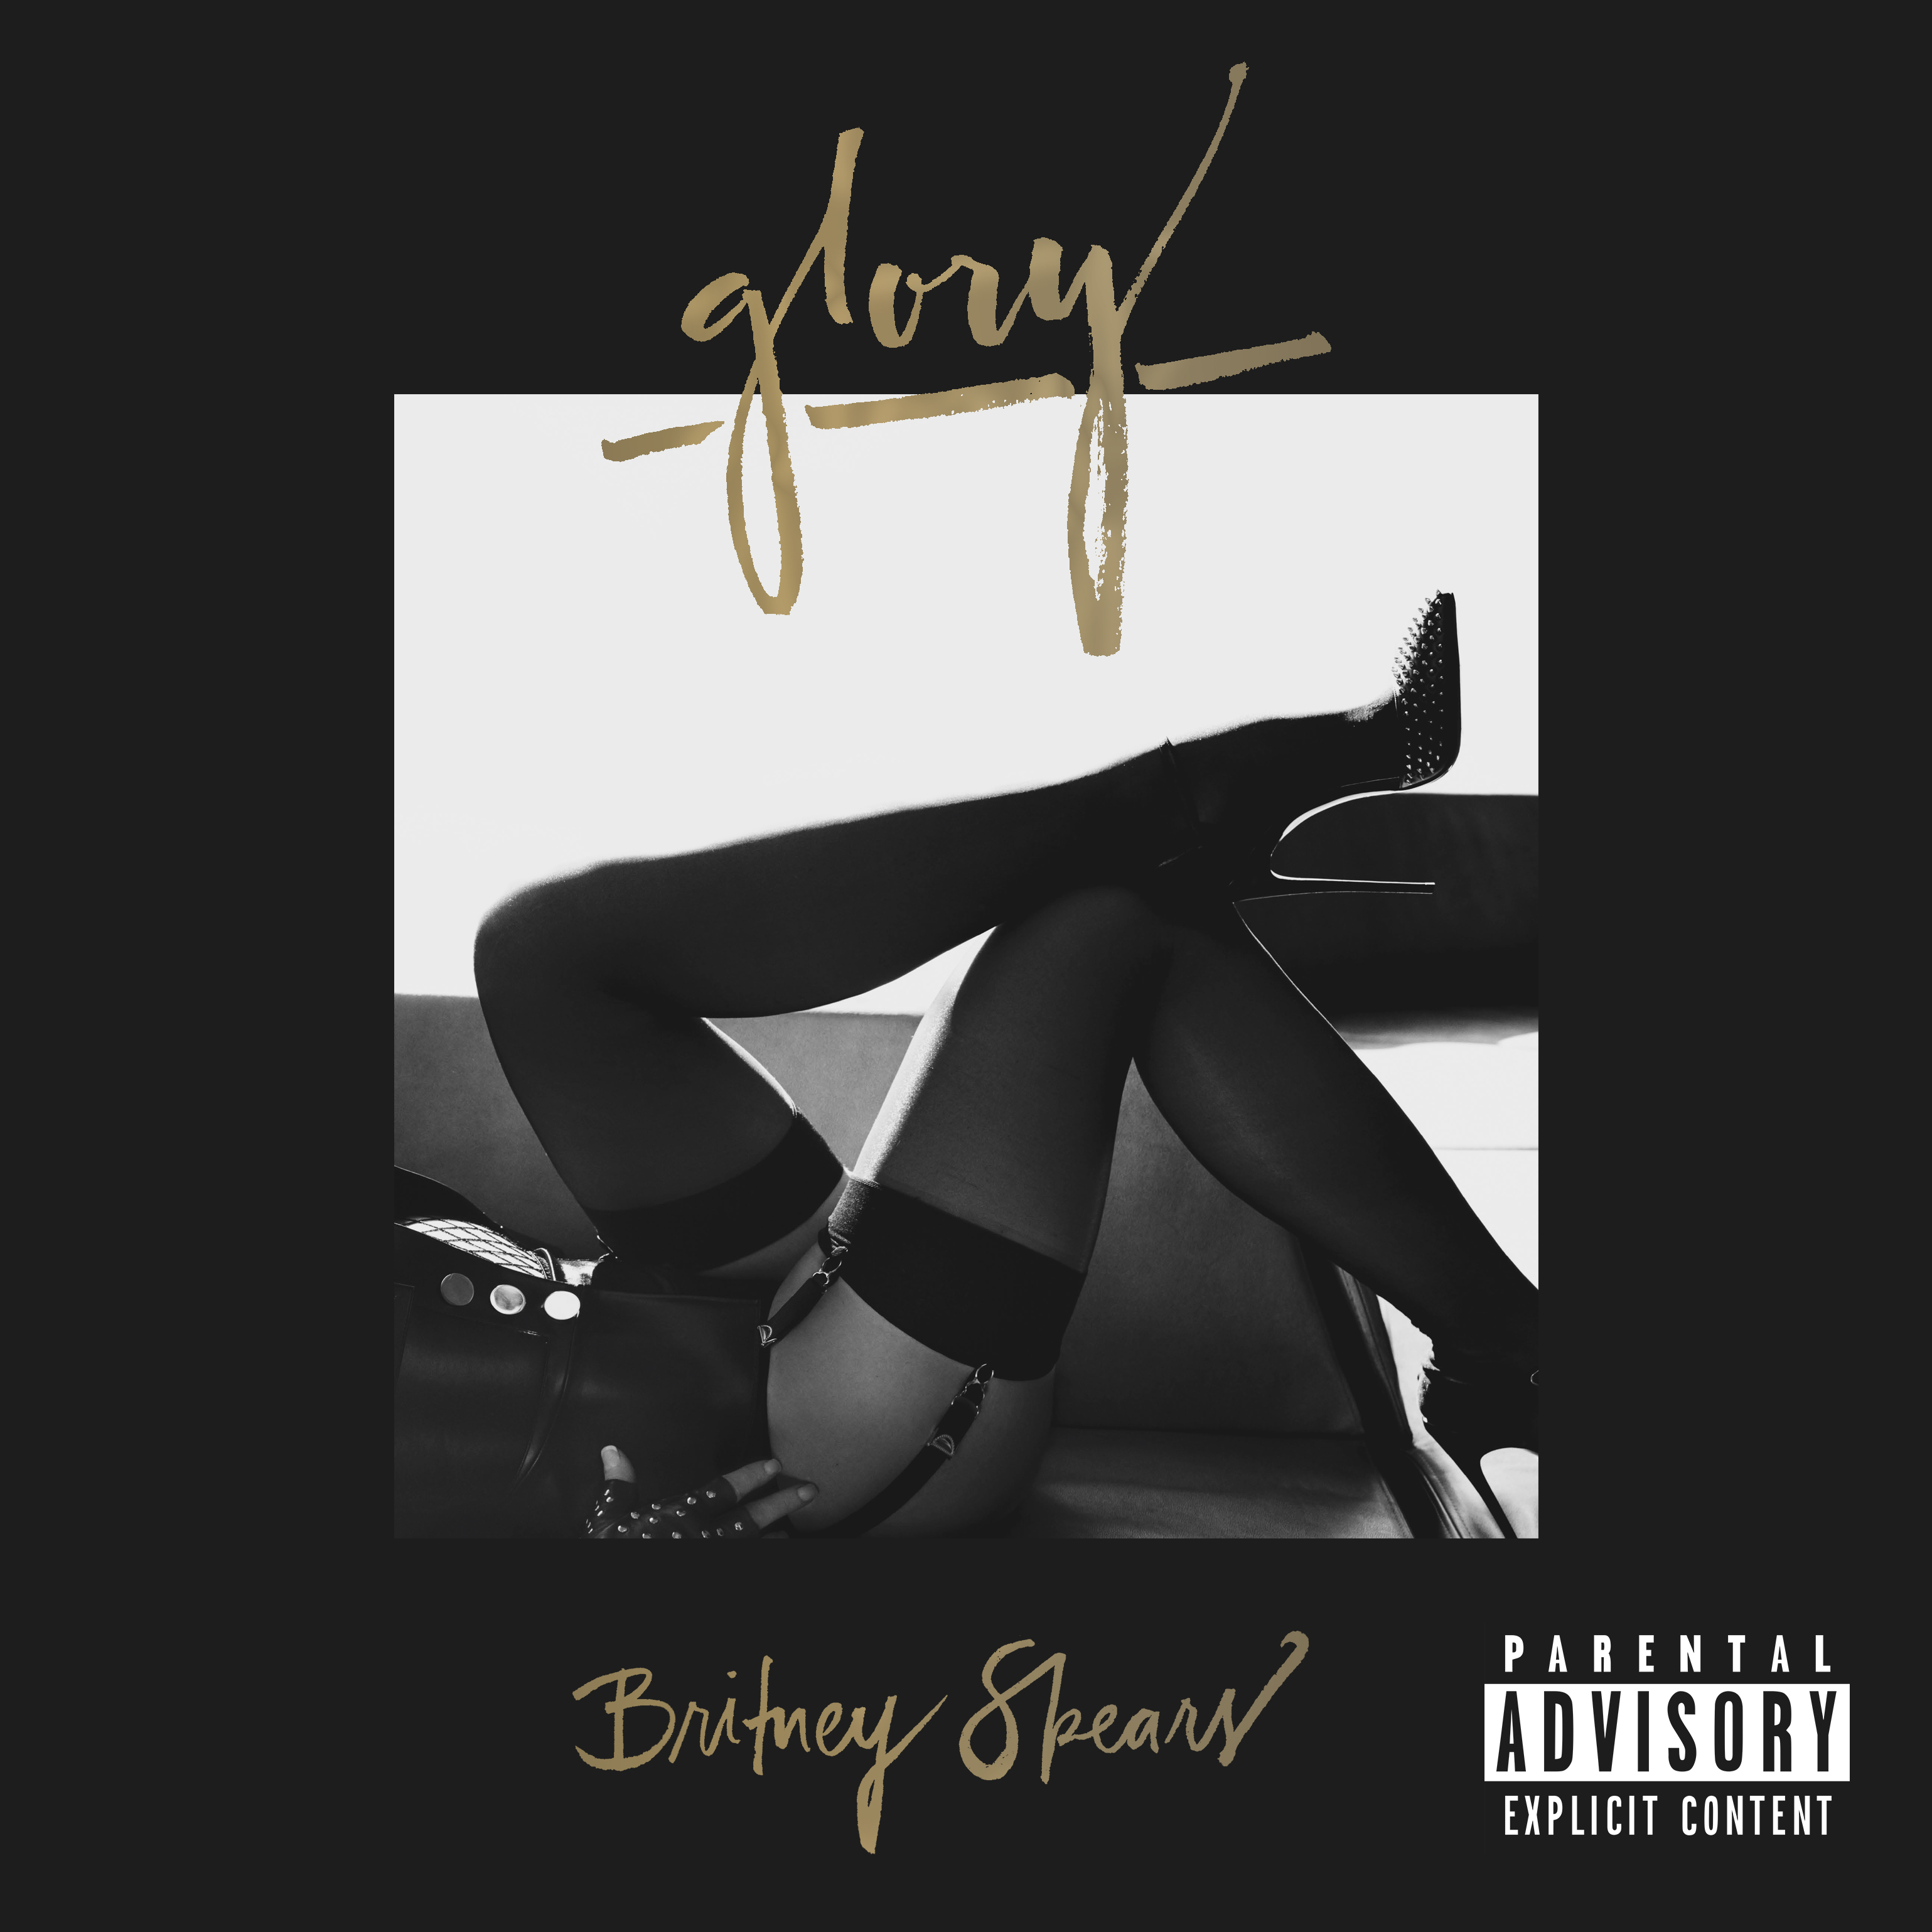 Alternative Glory Cover - The Britney Spears Forum - Exhale Britney Spears Glory